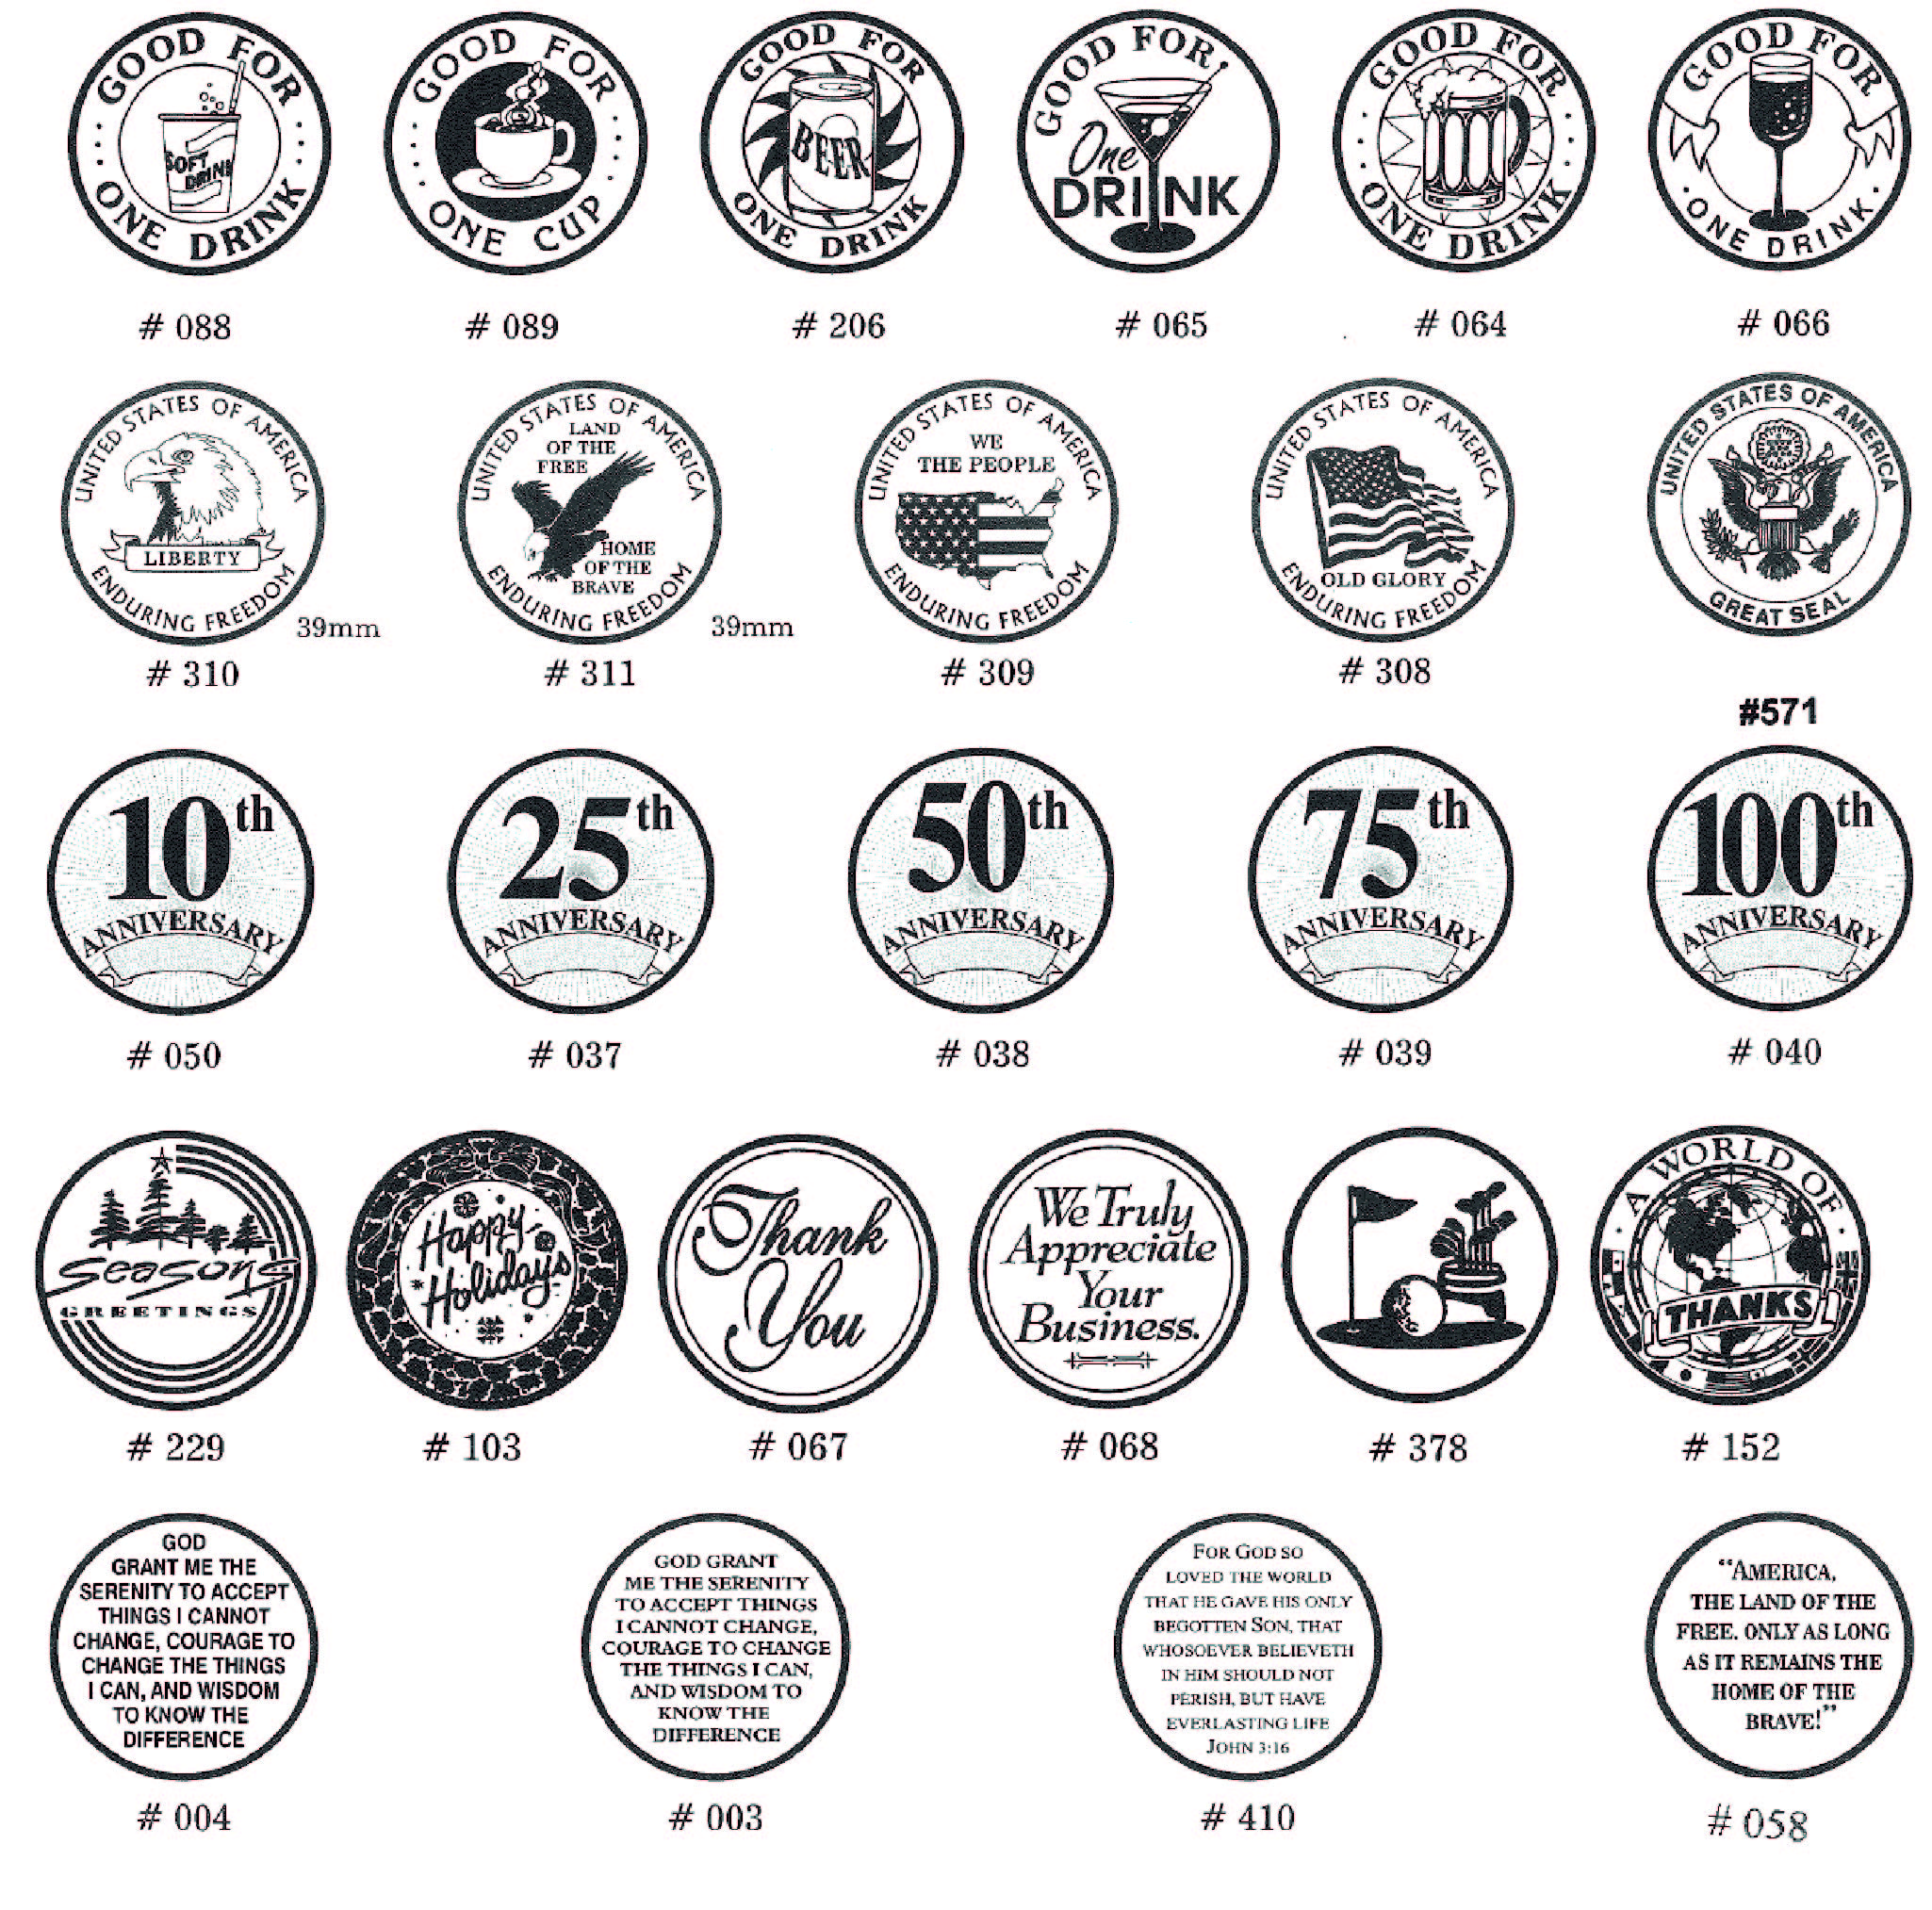 http://files.b-token.us/files/377/original/Aluminium tokens standard designs.jpg?1568269668